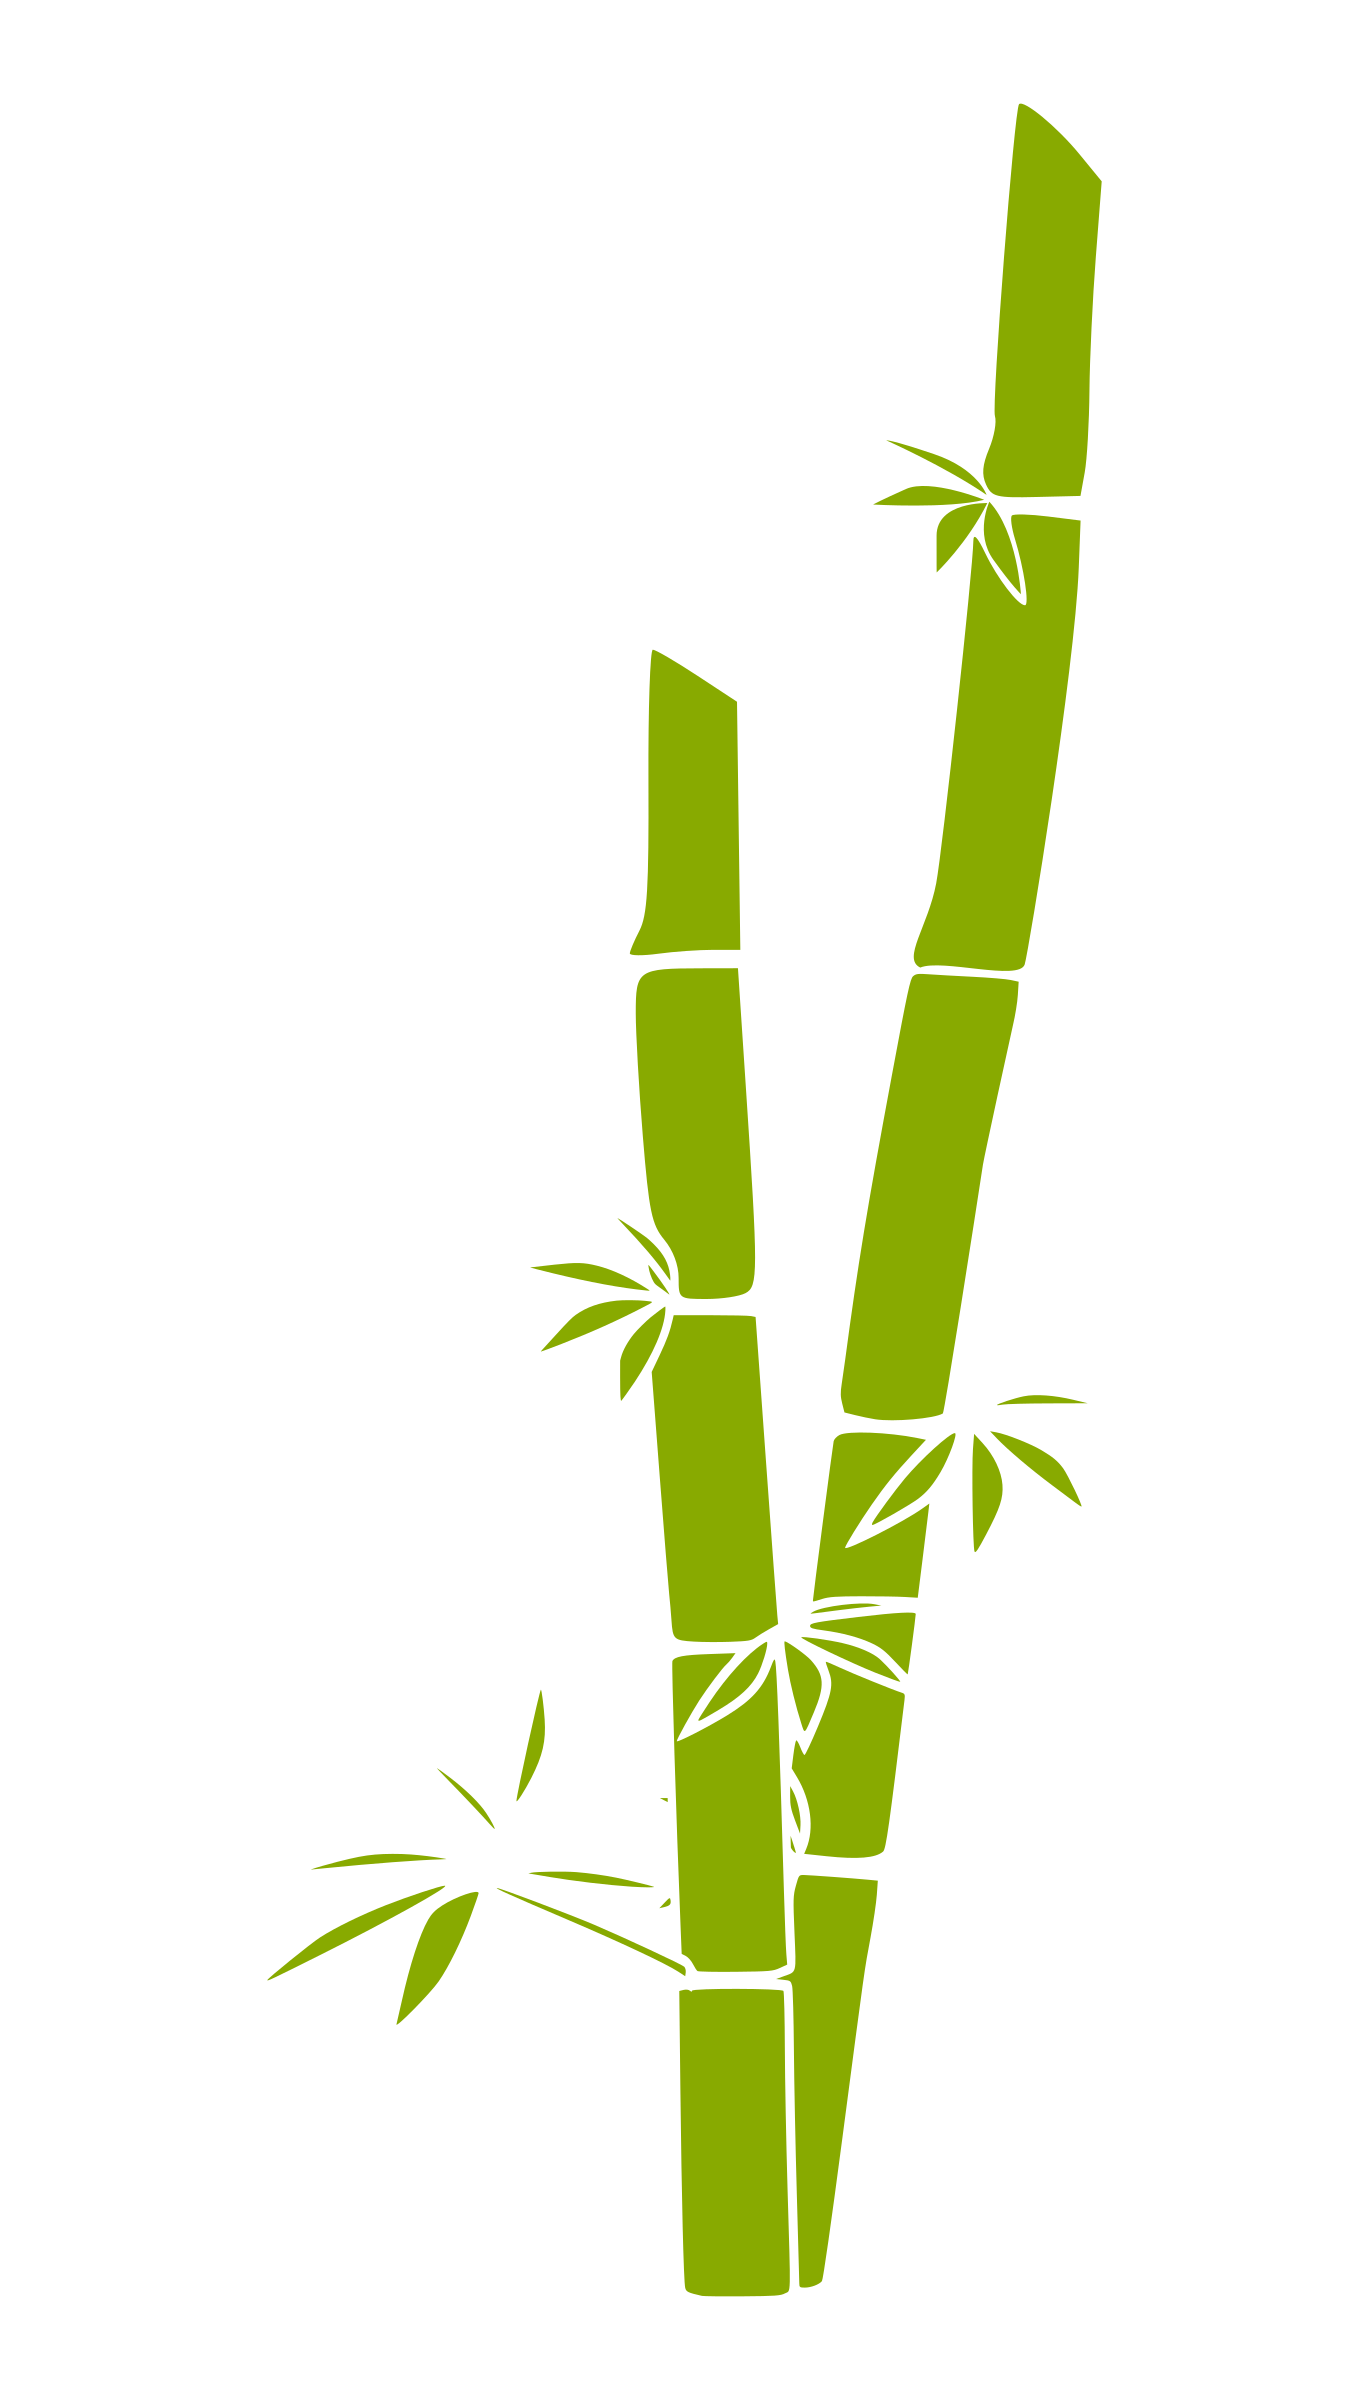 Bamboo shoots png. Icons free and downloads